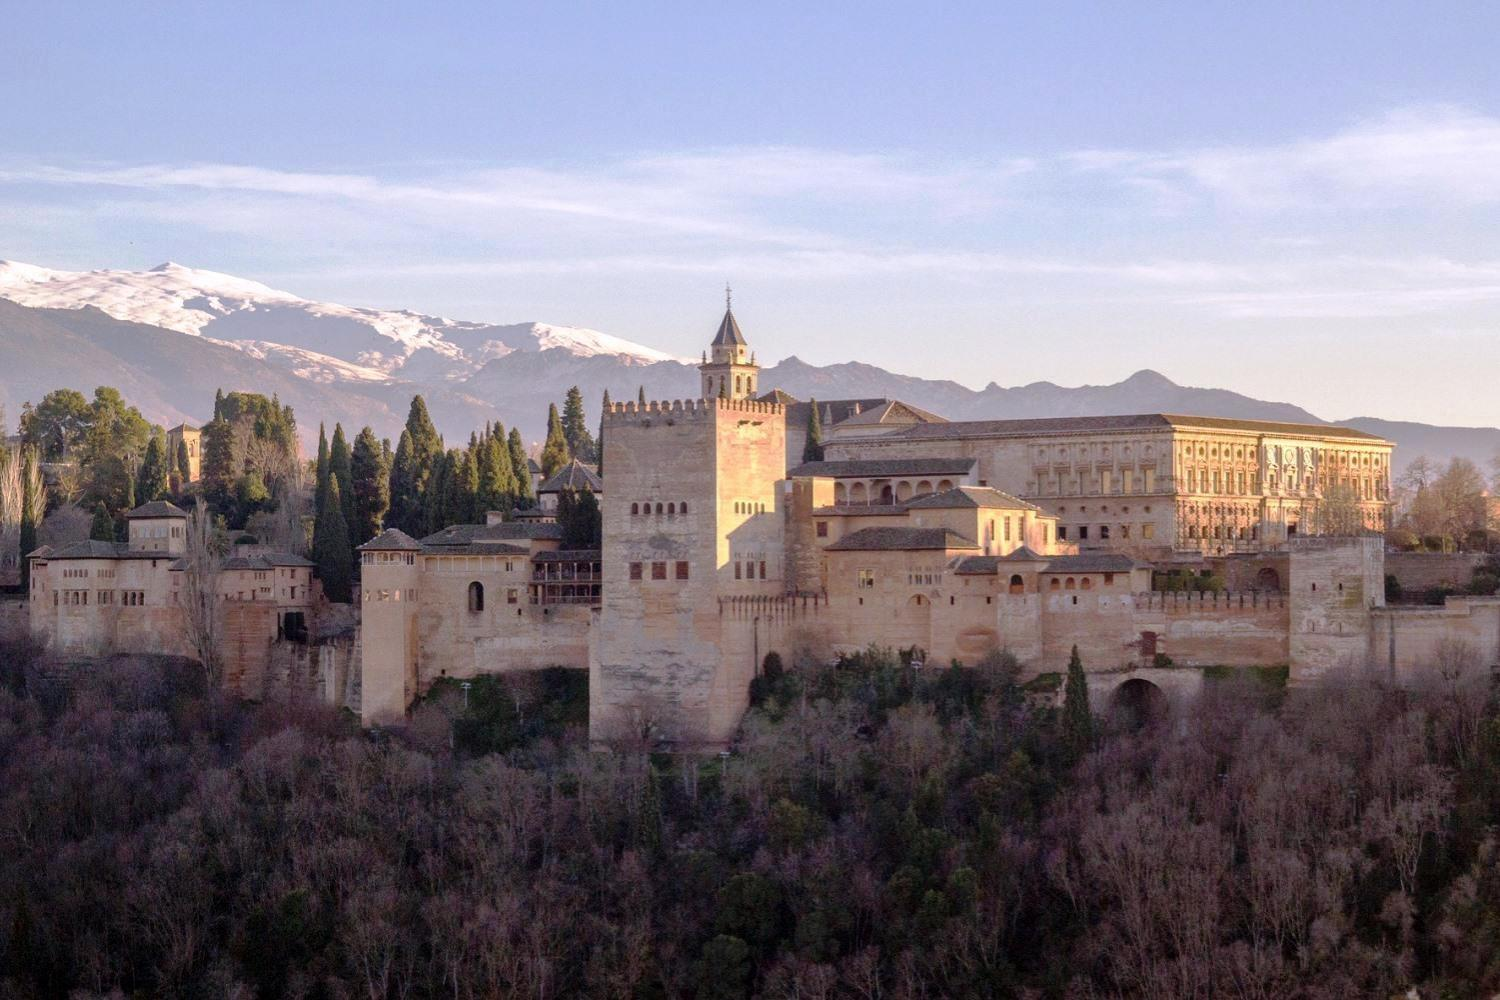 panoramic views of Granada and Alhambra during the tour